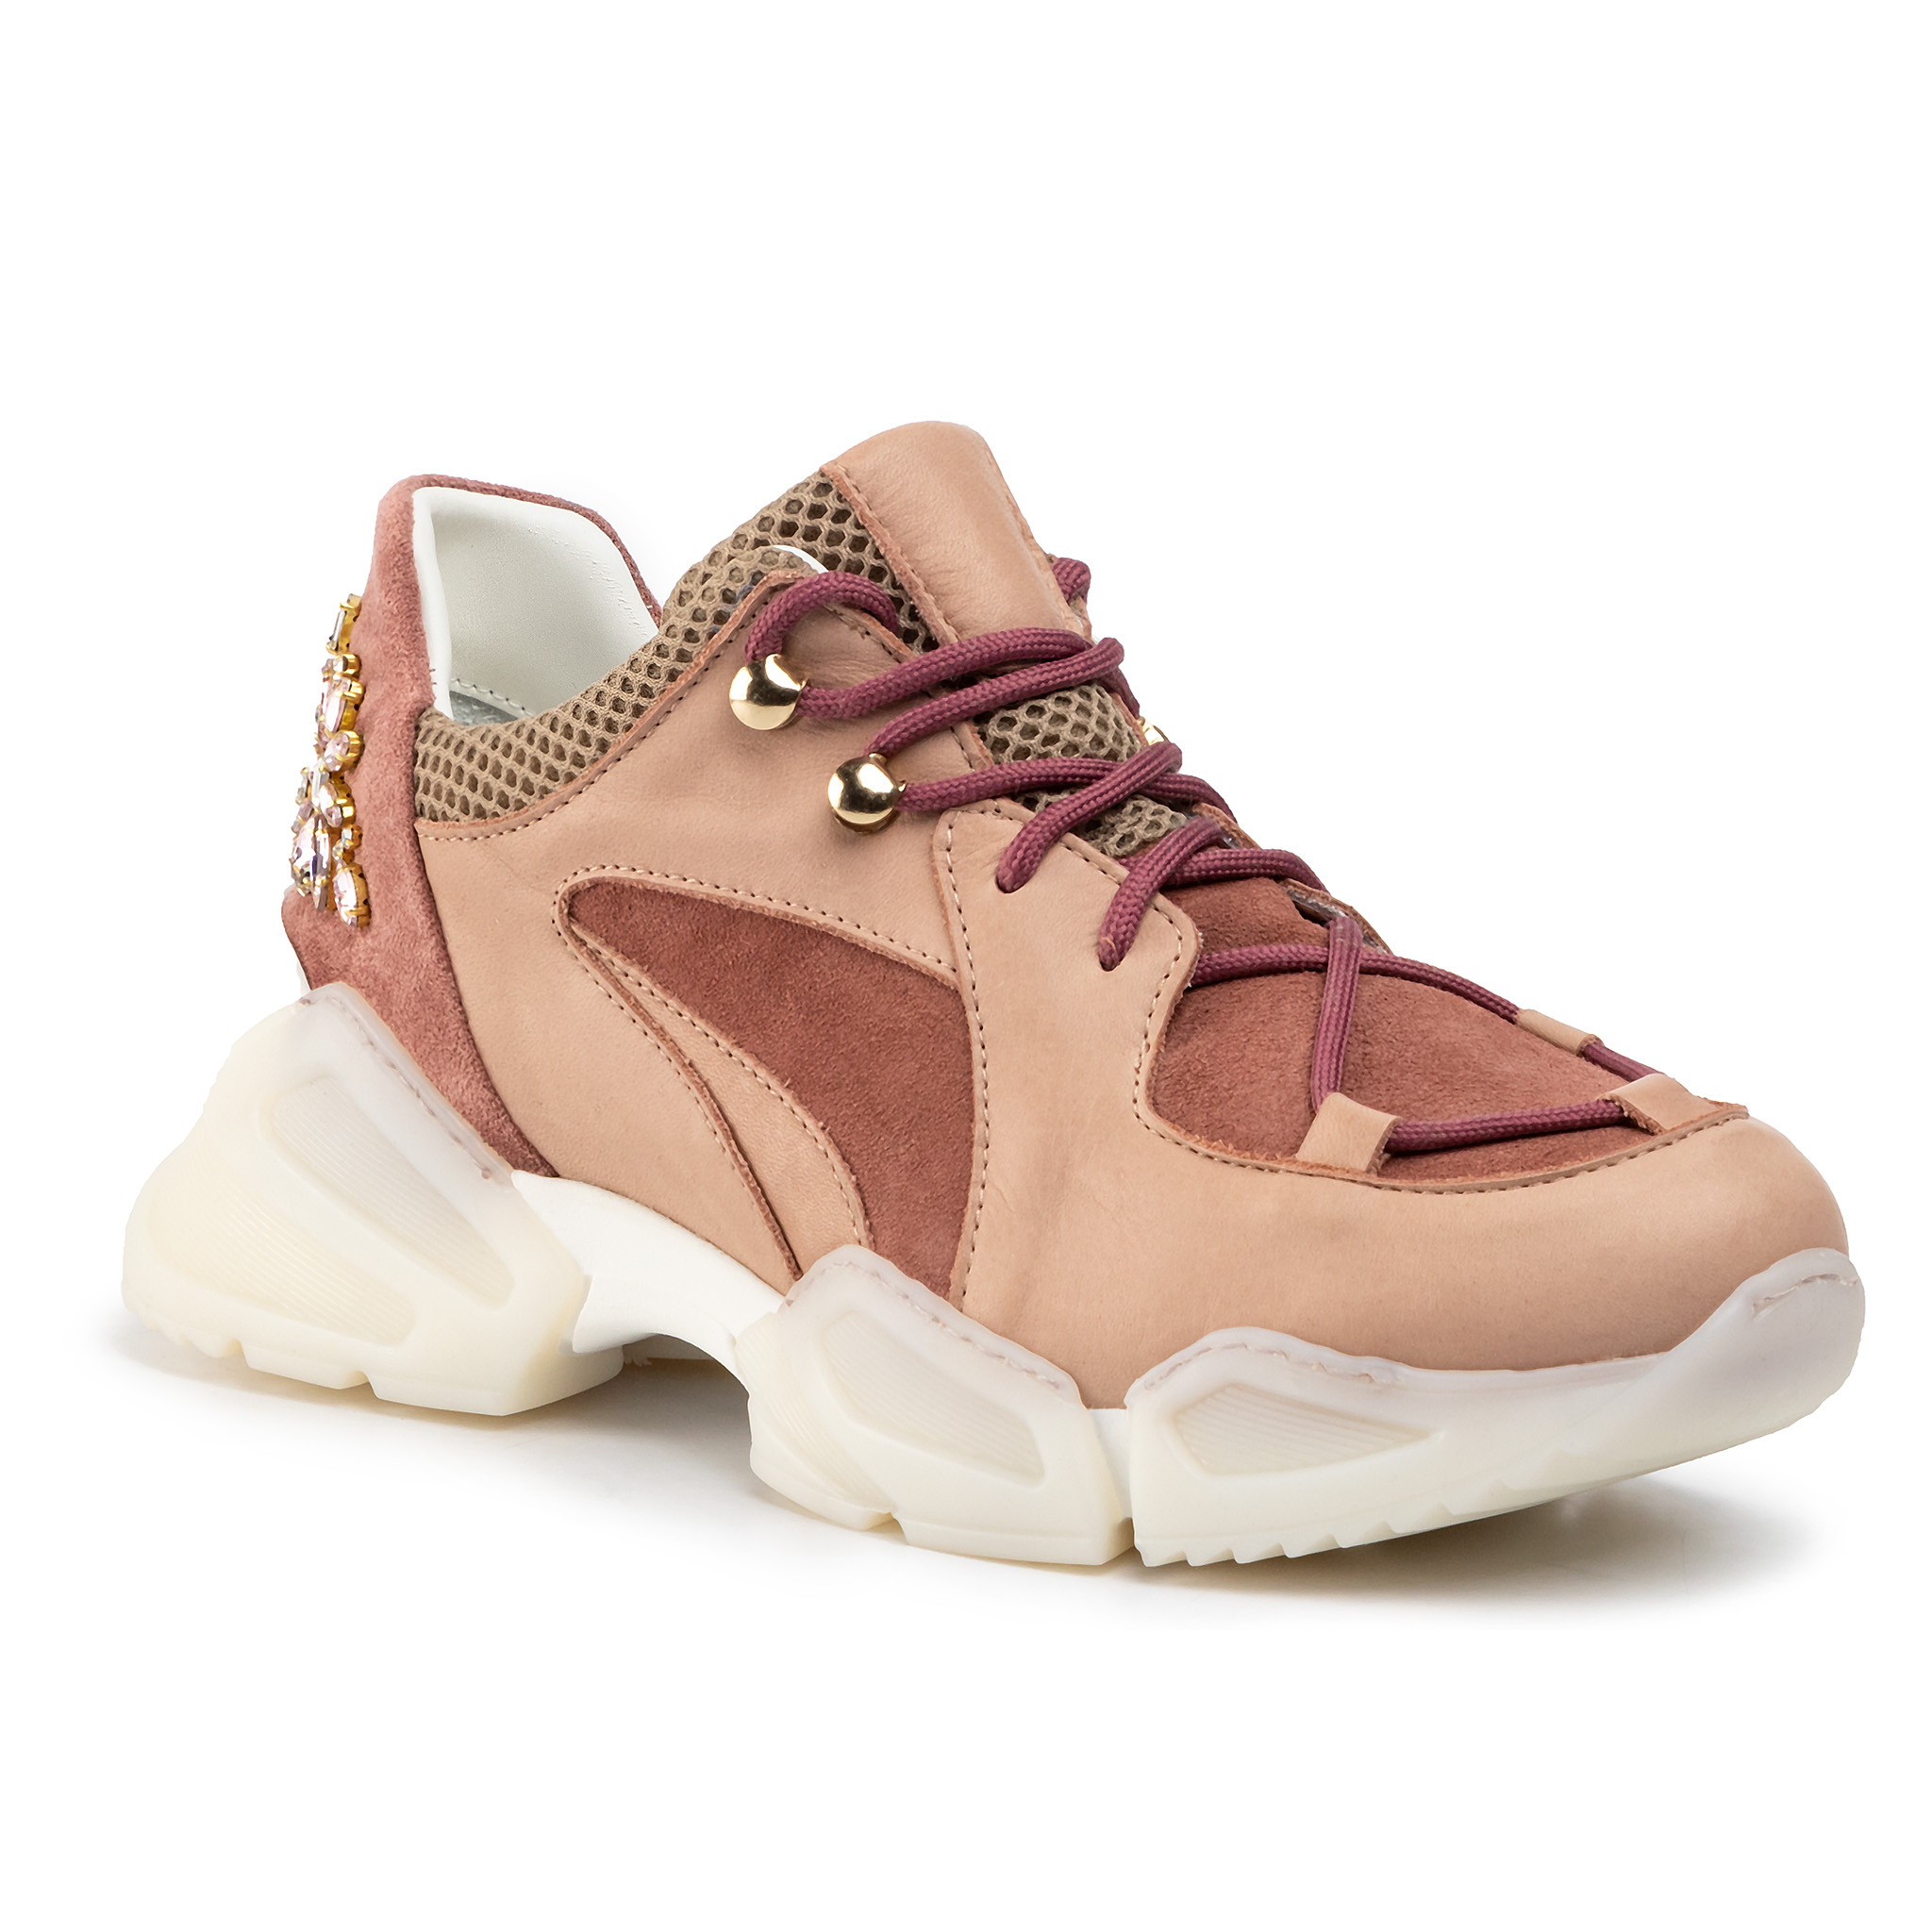 Sneakers TWINSET - Running 192TCT112 Nude Pink 04228